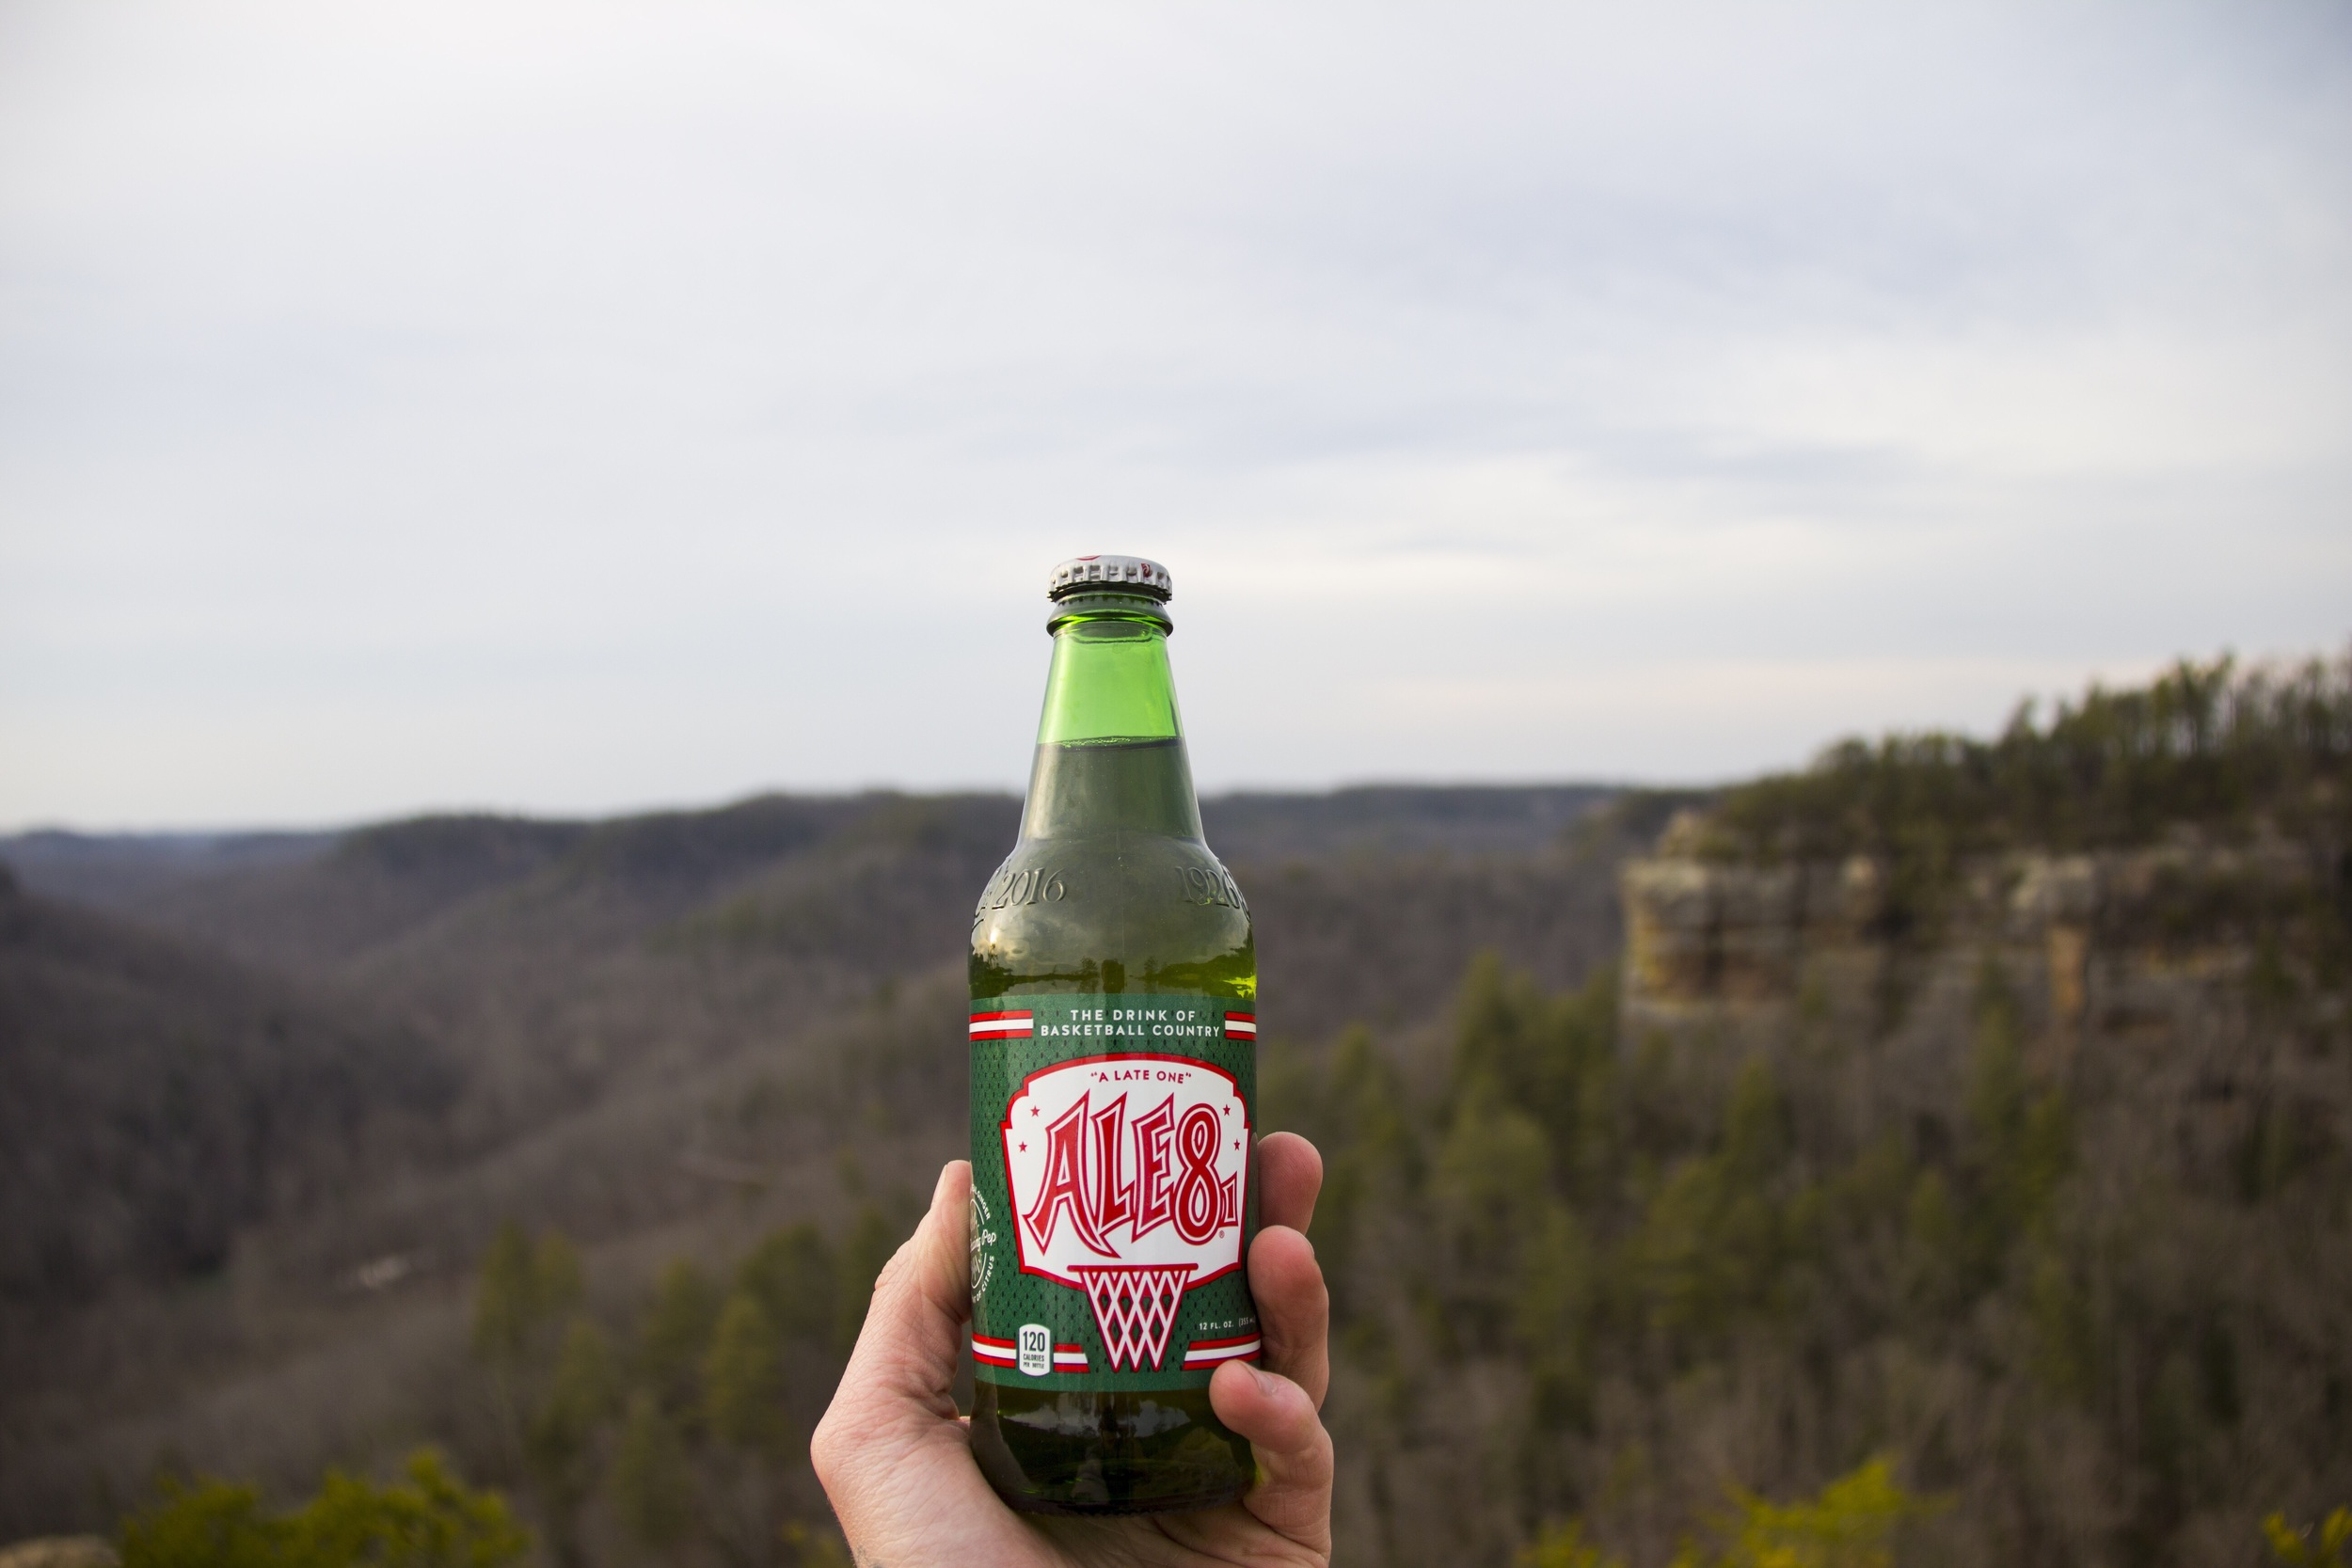 Got a good shot of my Ale 8 on Half Moon. Sorry to say I actually drank 3 six packs of these in four days. If we can find it in Bowling Green it's usually not bottled or too expensive.